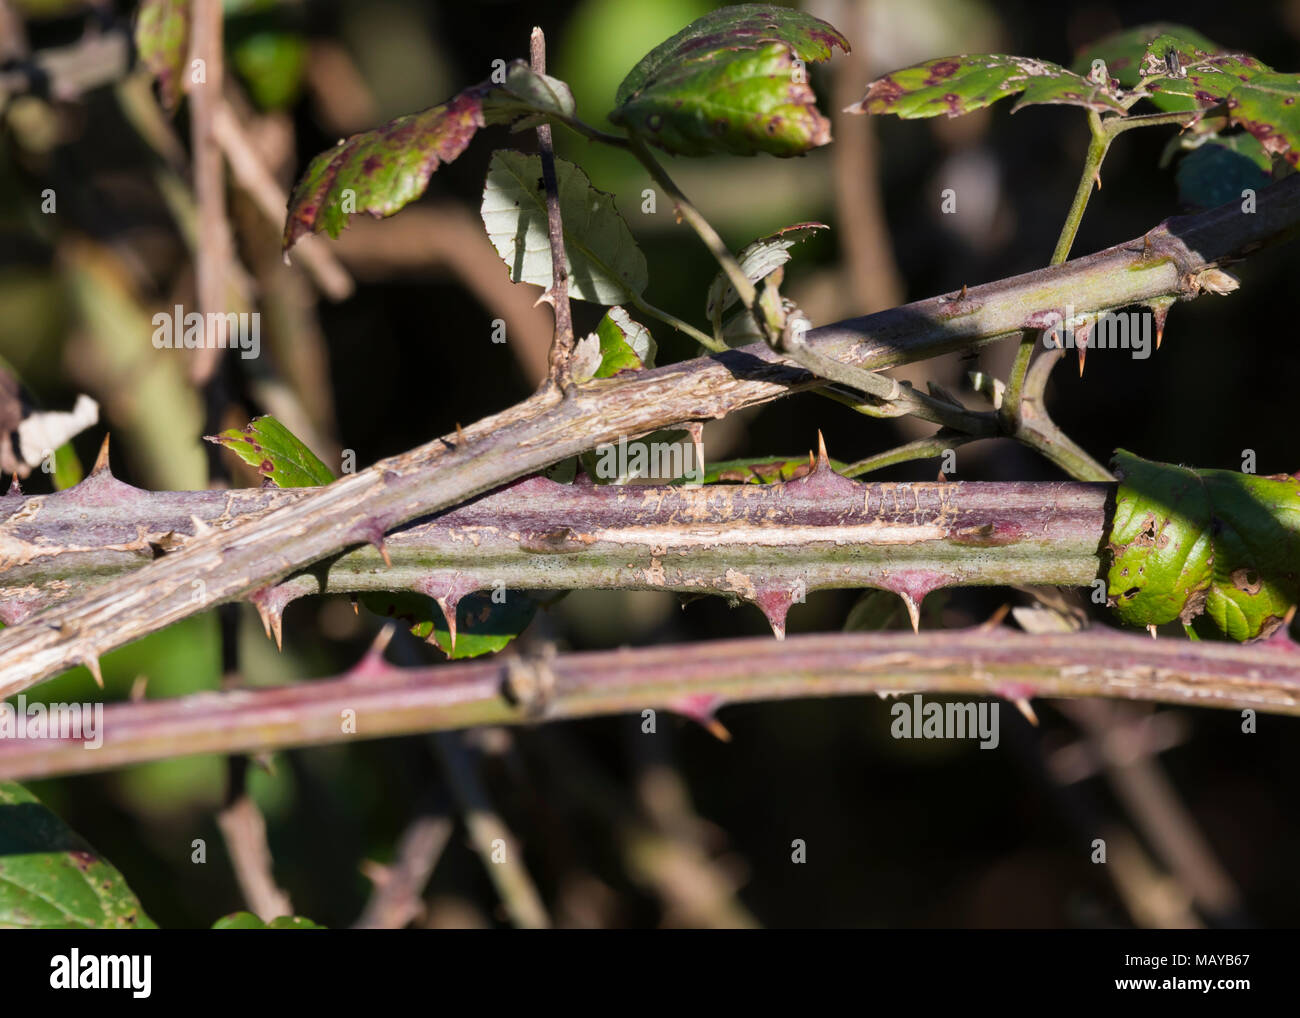 Overlapping thorny bramble twigs in Winter. - Stock Image